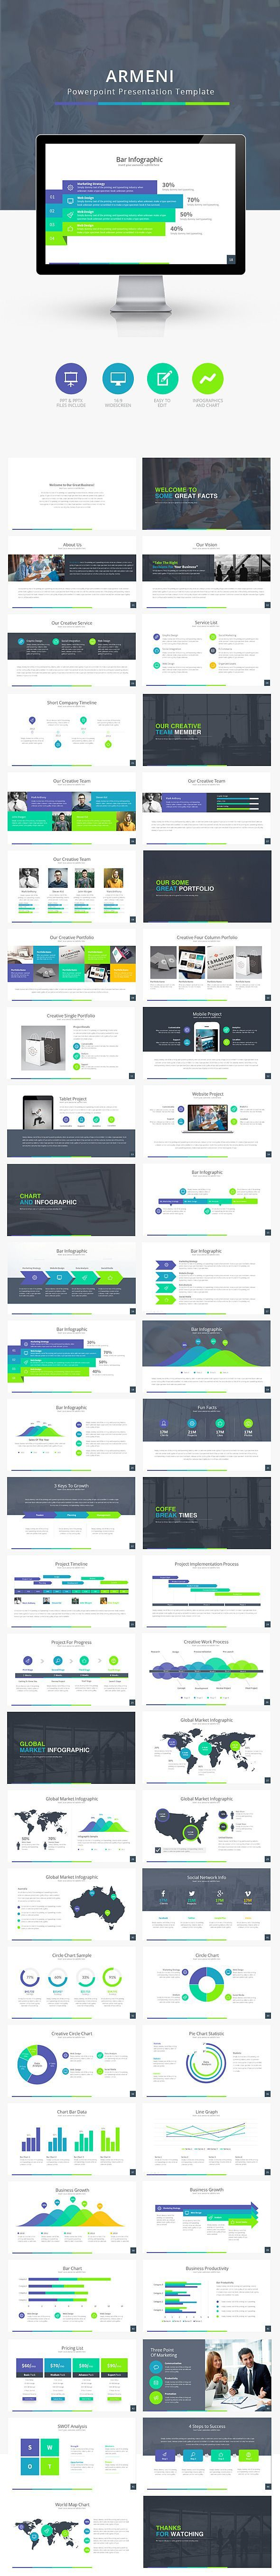 Armeni Powerpoint Presentation Template  (Powerpoint Templates) Preview: